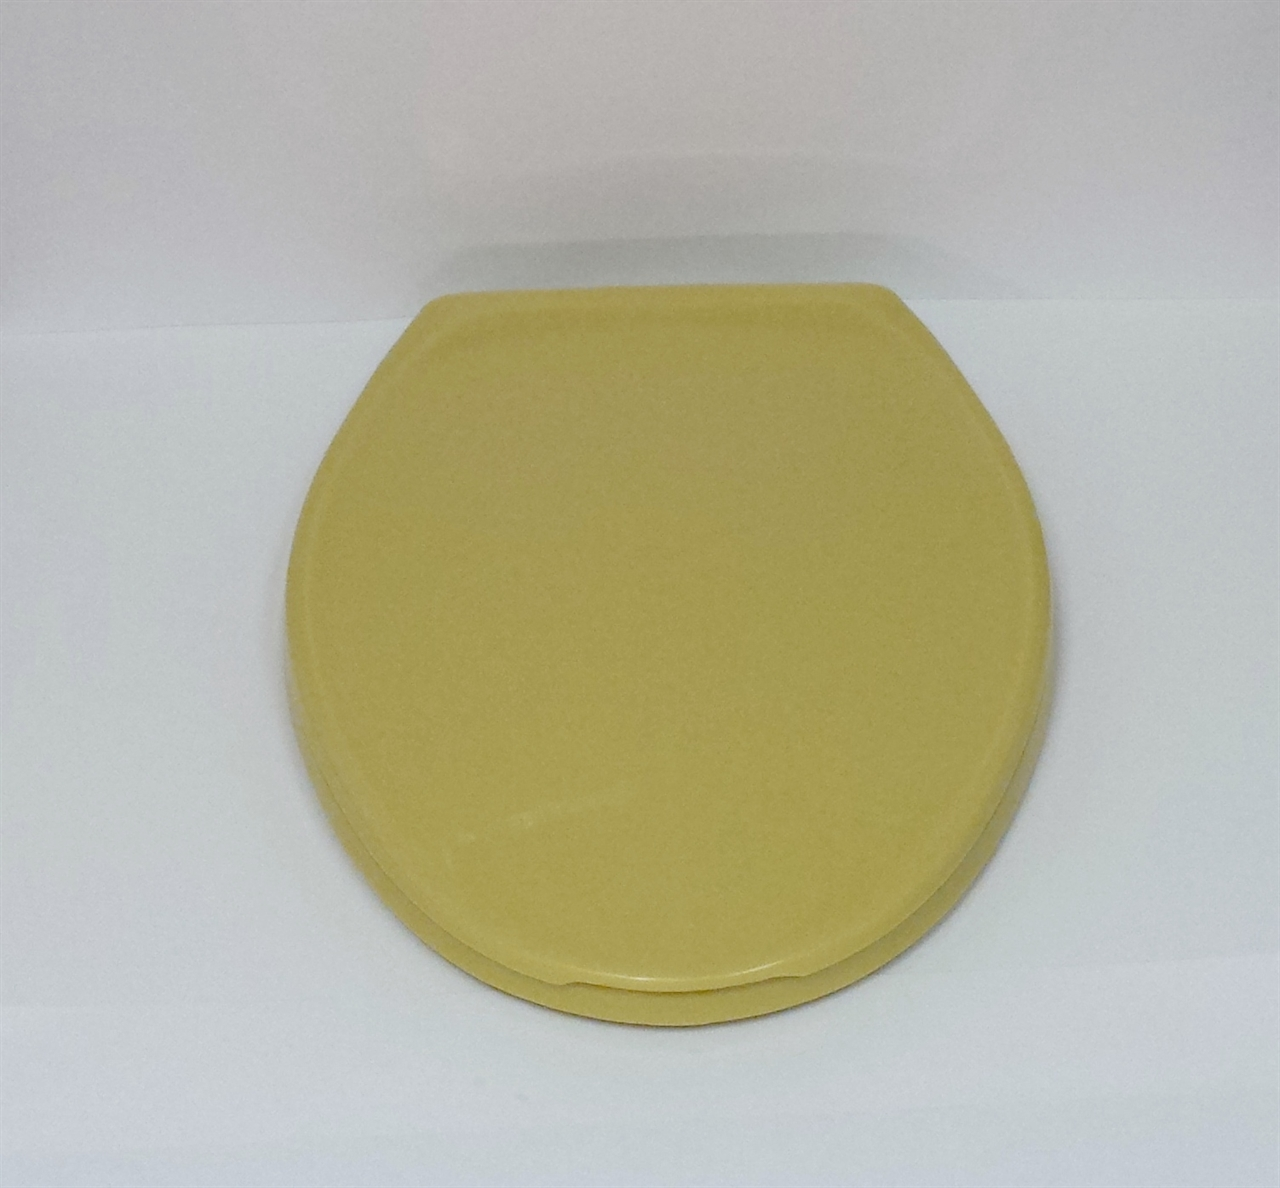 Harvest Gold Toilet Seat Elongated With Cover Noels